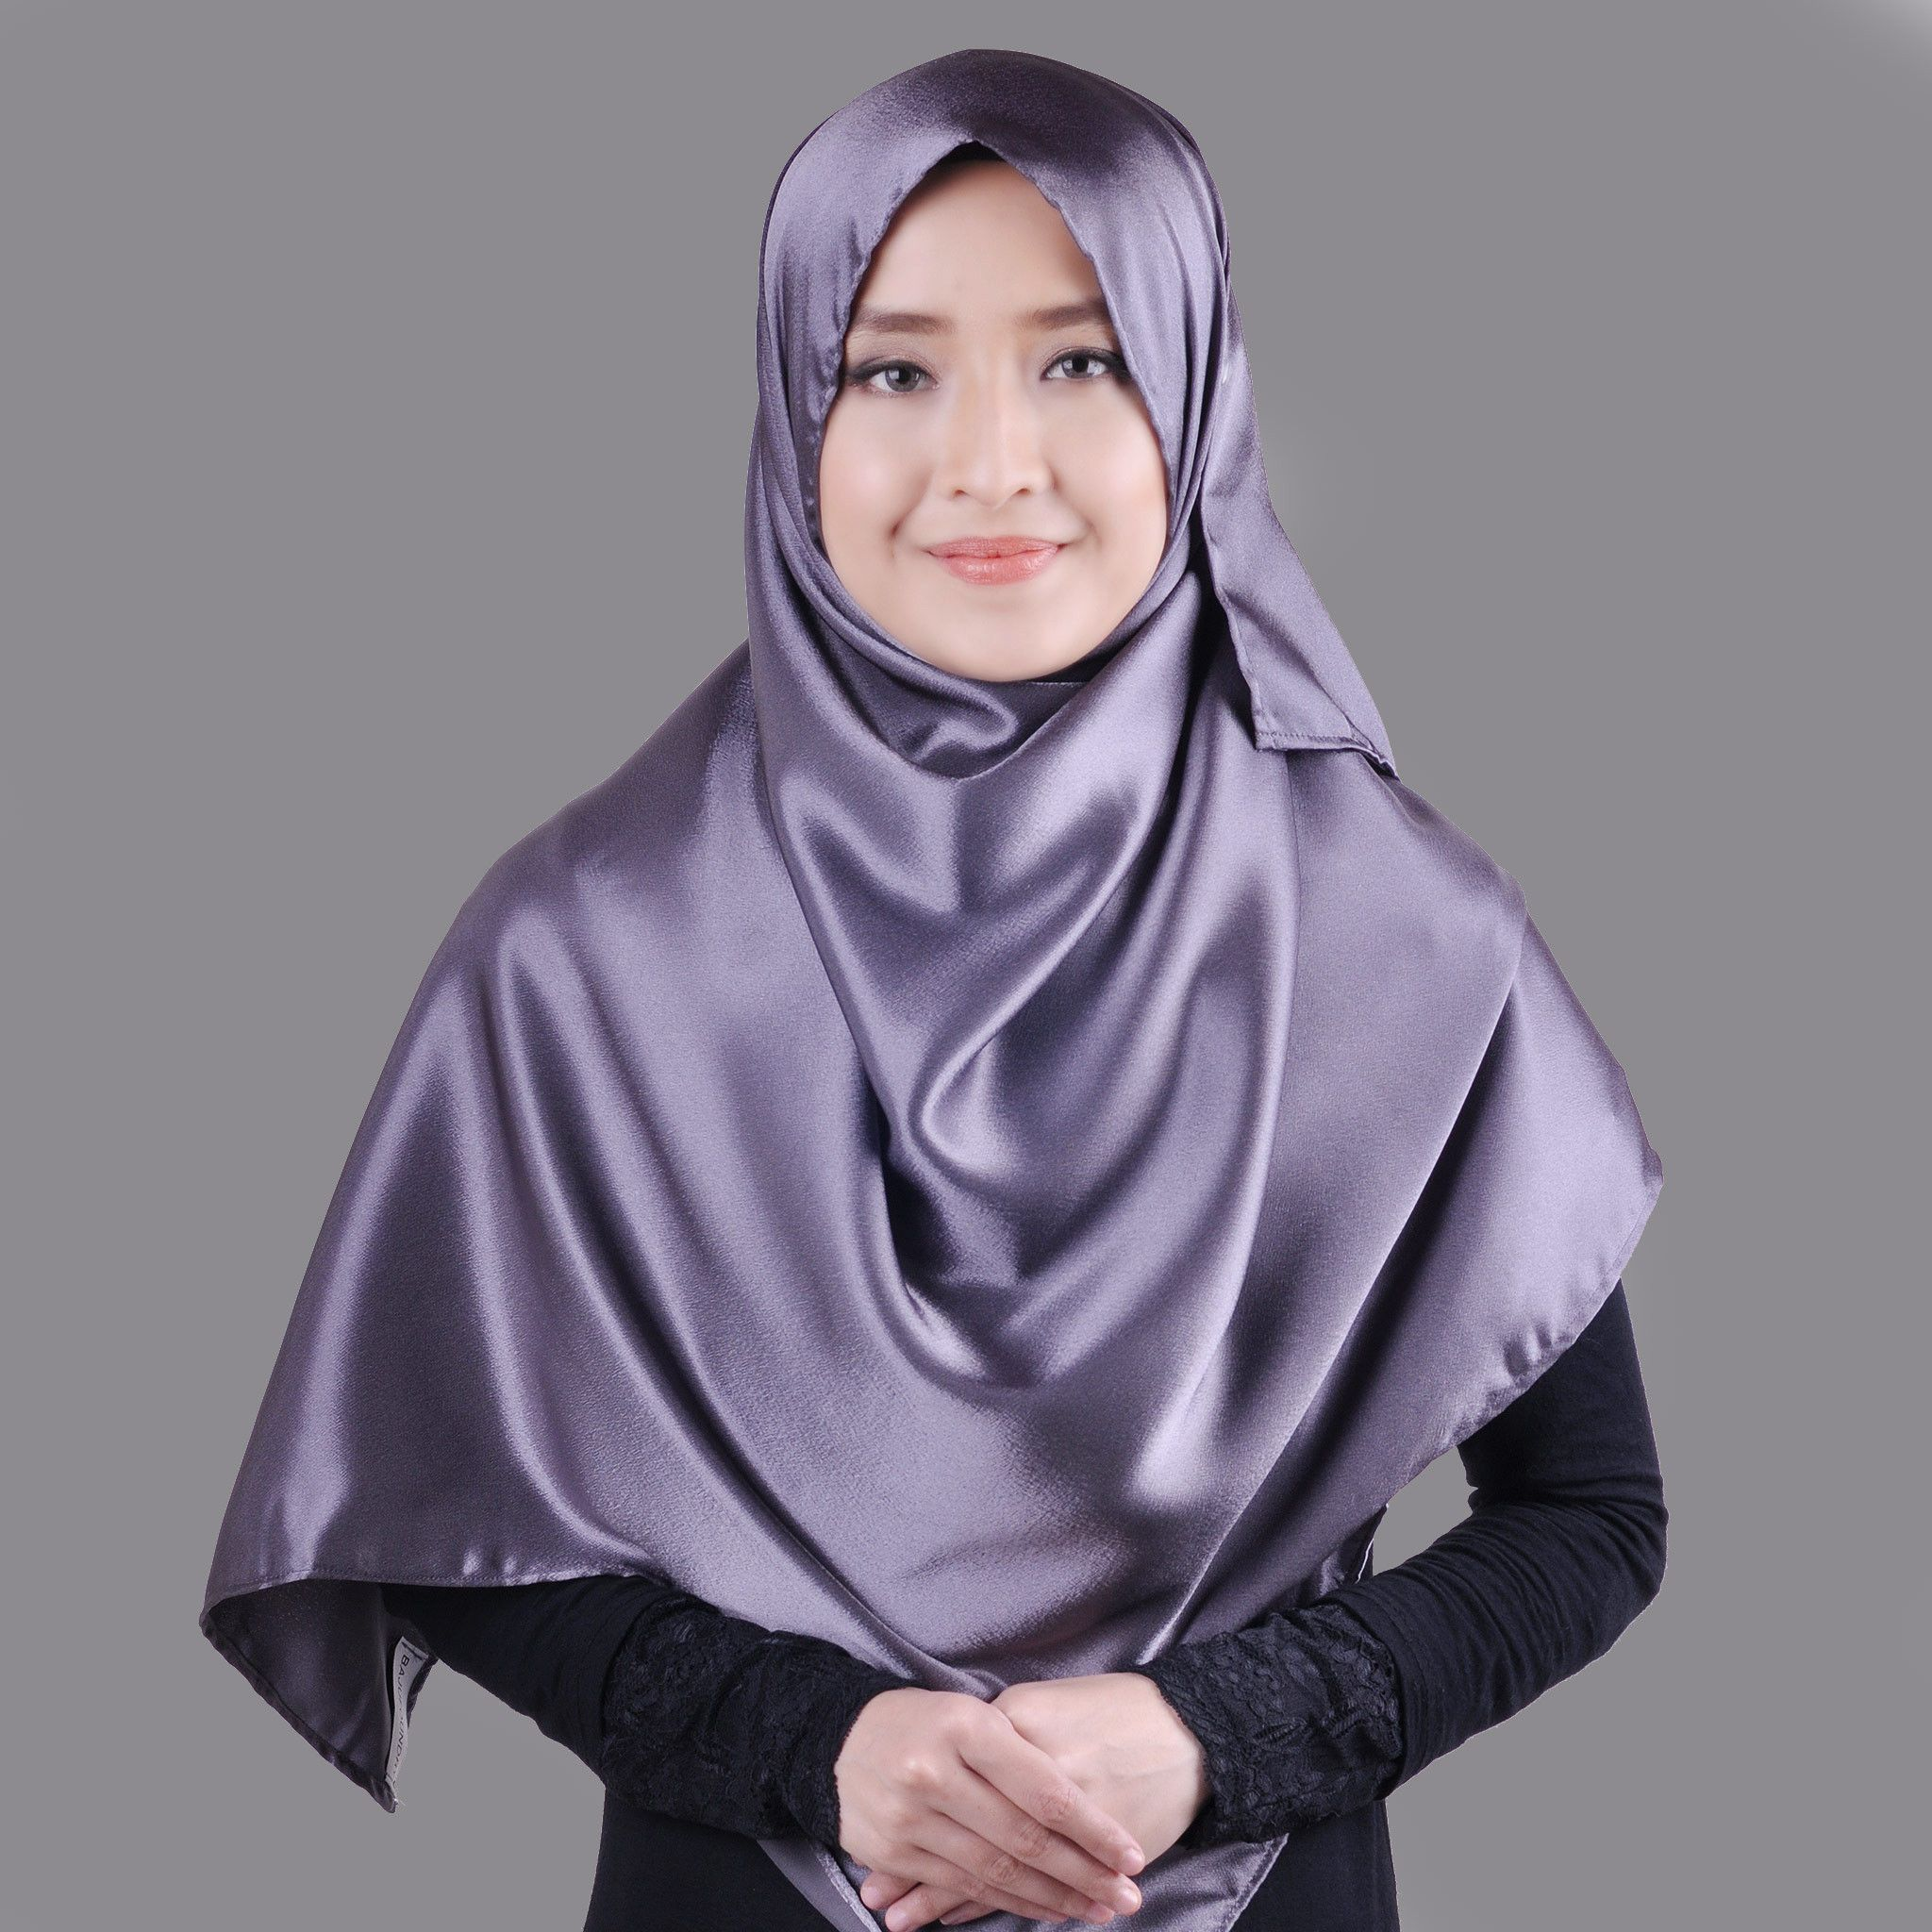 Satin Hijab Aliexpress Com Buy Muslim Women Hijabs Plain Silky Satin